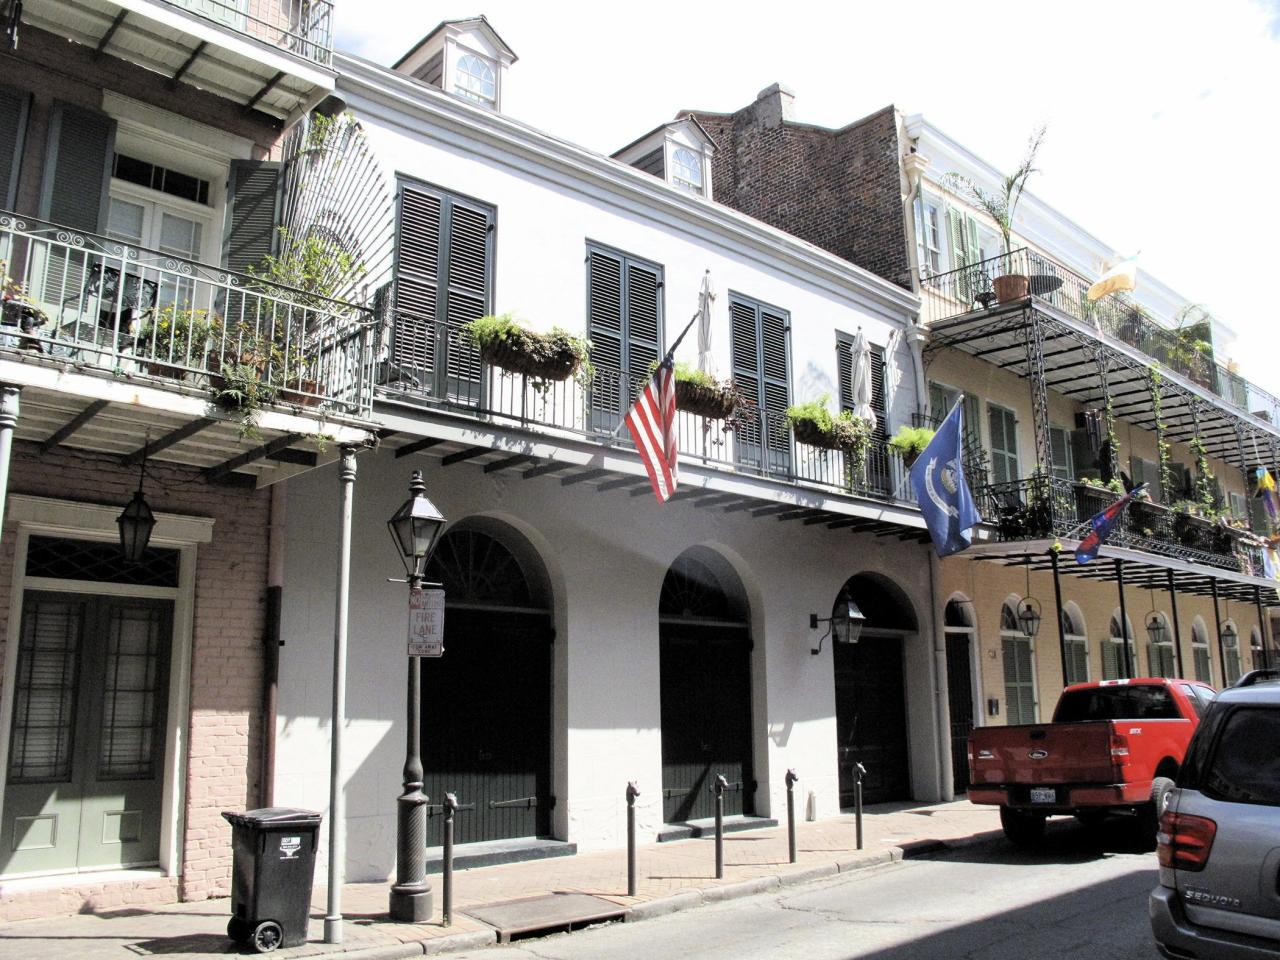 "Brad and Angelina recently listed their 1830s home located in New Orleans' French Quarter for $6.5 million. The historic property features five bedrooms and 3.5 baths as well as an elevator and a separate guest house. A rep for the couple told PEOPLE that they intended to find another property in the city, where Brad is deeply involved in the charitable organization Make it Right, but are looking for something ""more off the beaten path."" Though they will be giving up the opportunity for neighborly banter with Matthew McConaughhey, who lives across the street."